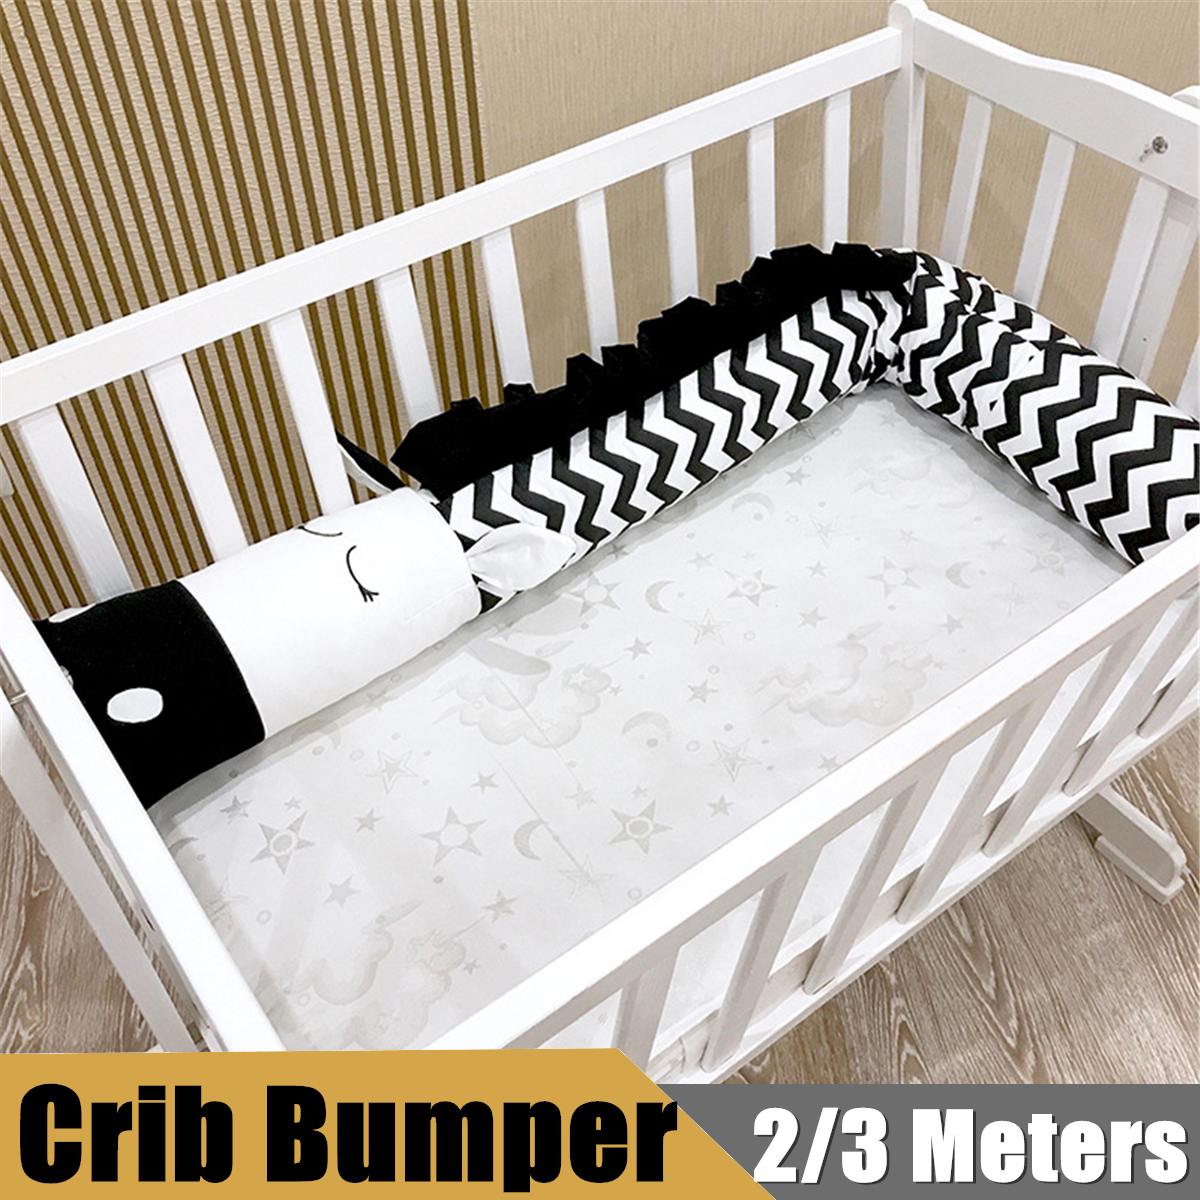 Medium Crop Of Mesh Crib Bumper